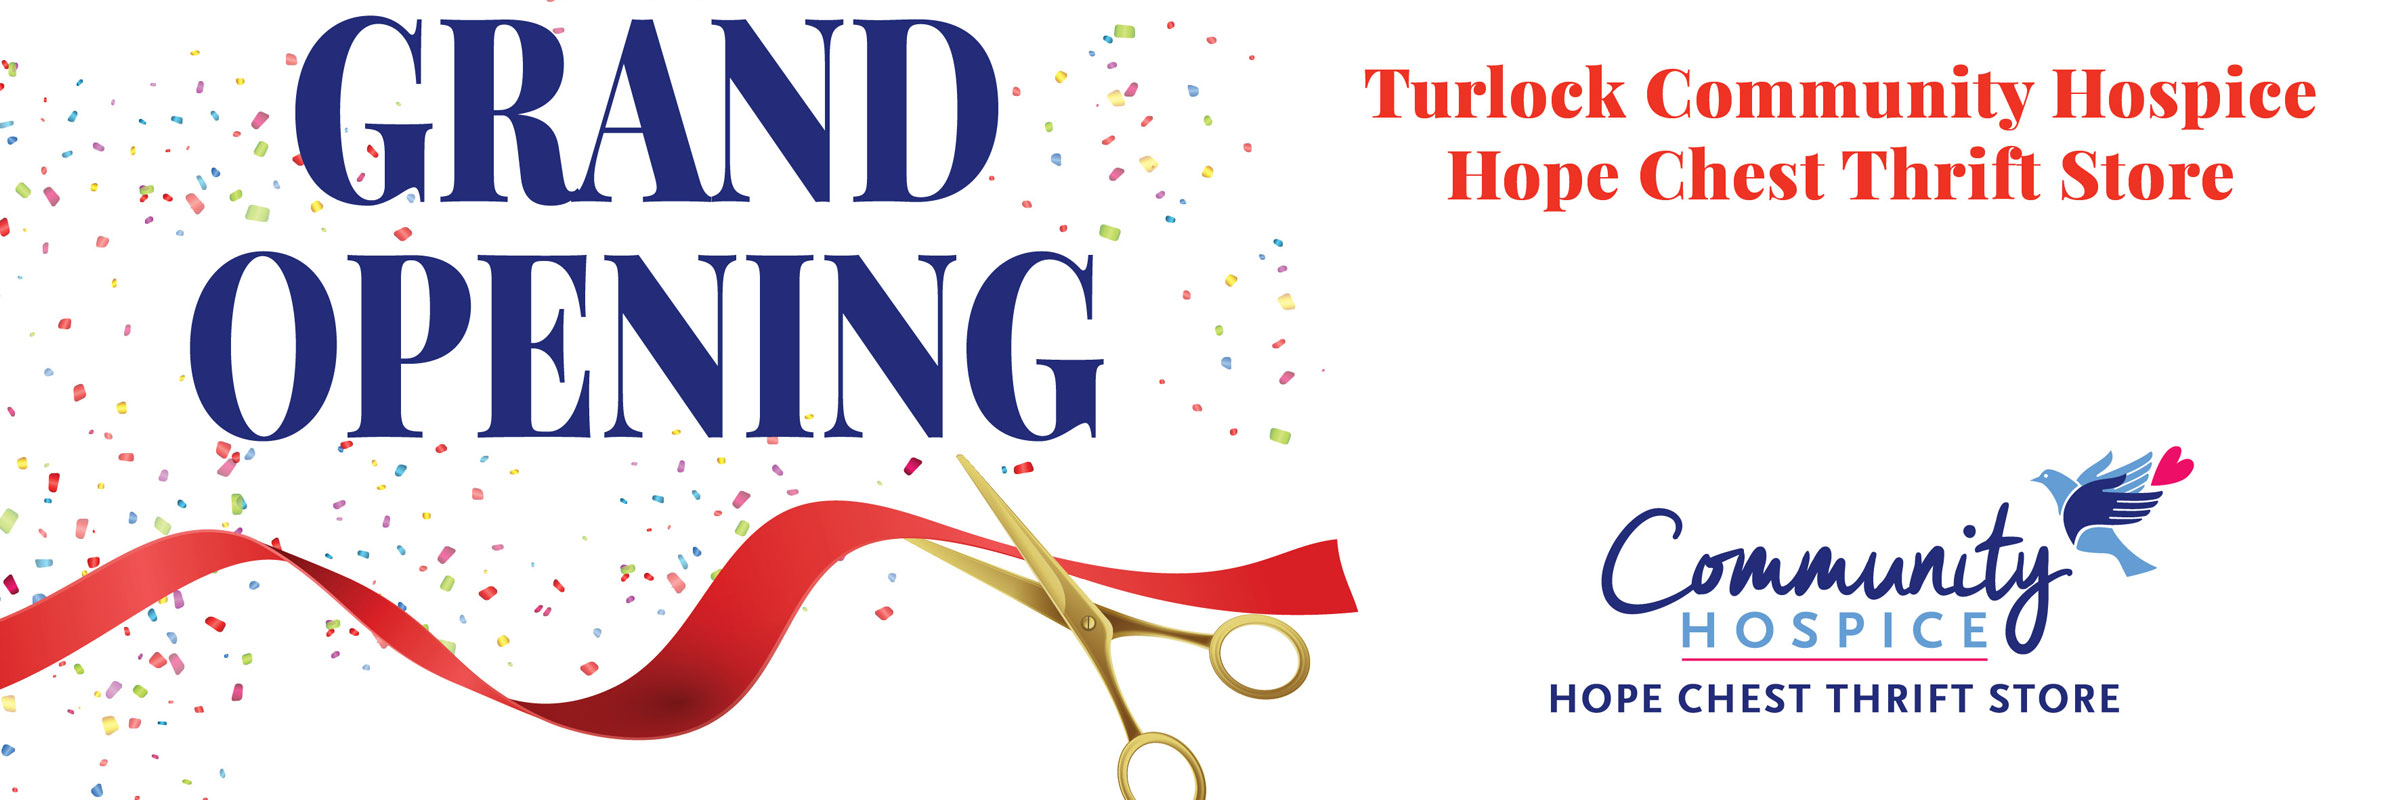 Hope-Chest-Turlock_Grand-Opening_HCcarouselgood